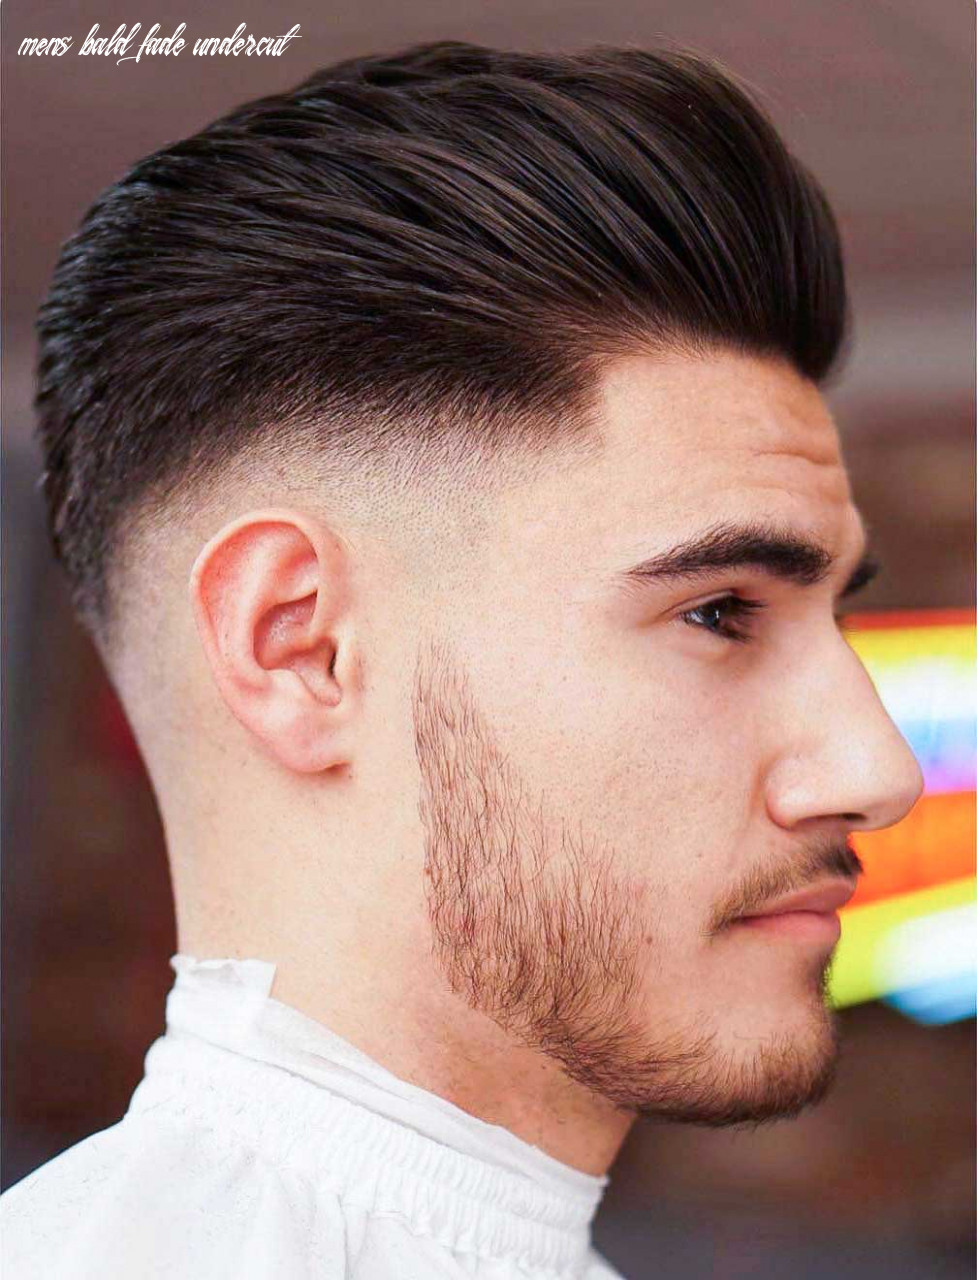 8 skin fade haircut ideas (trendsetter for 8) mens bald fade undercut